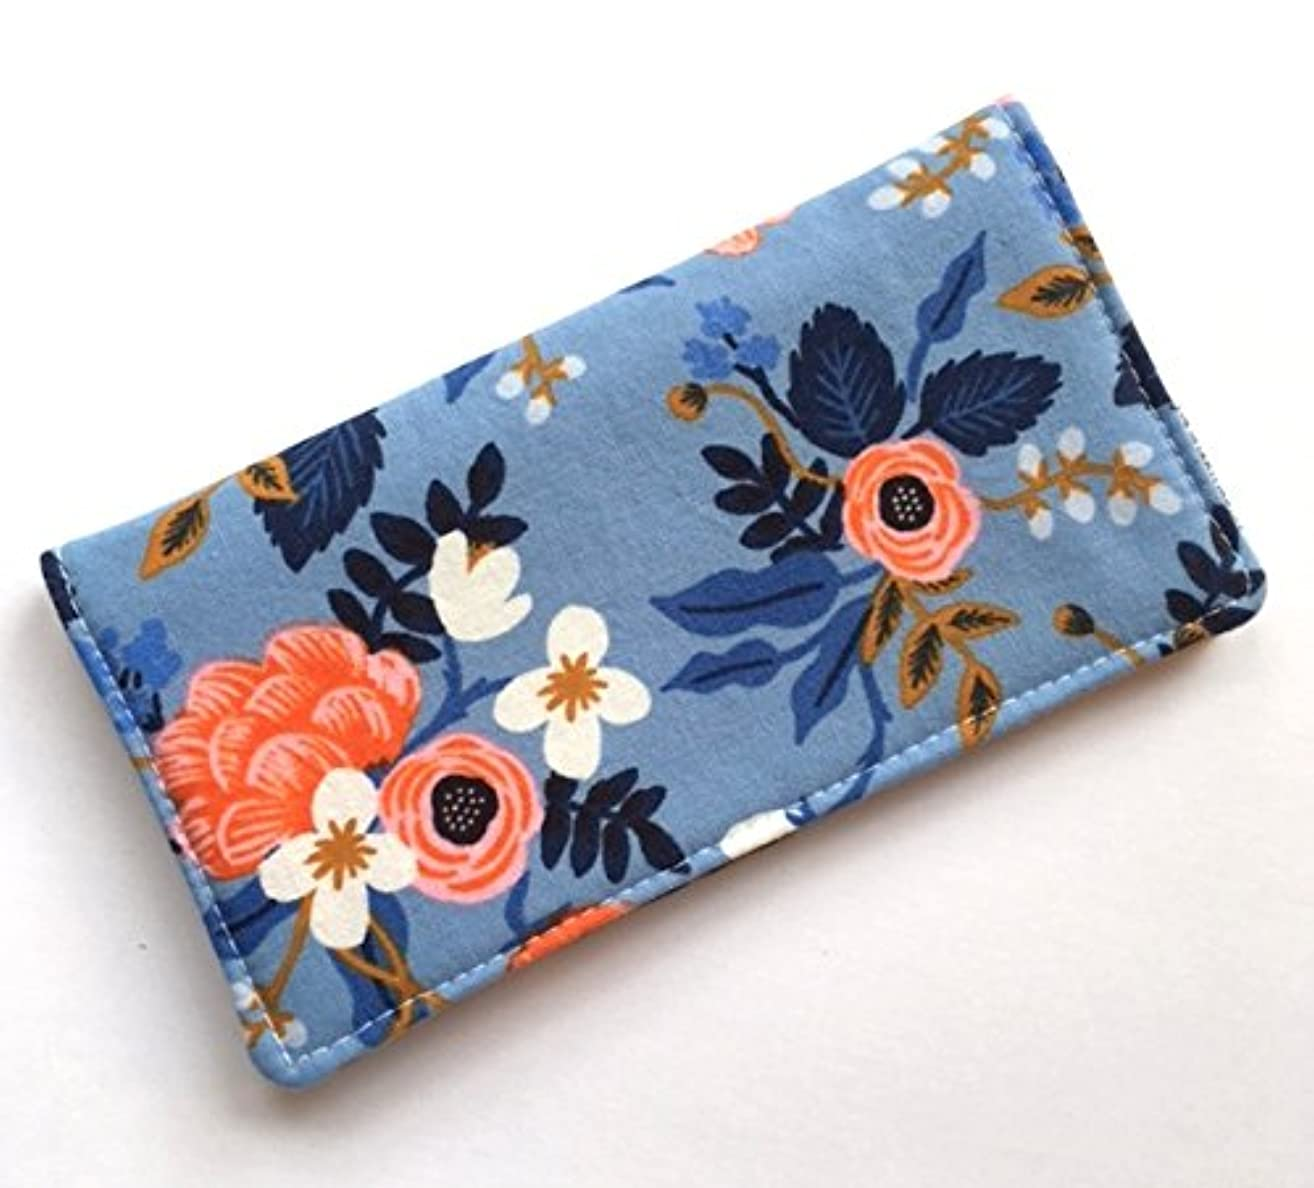 Checkbook Cover Wallet Receipt Holder - Rifle Paper Co. Birch in Periwinkle